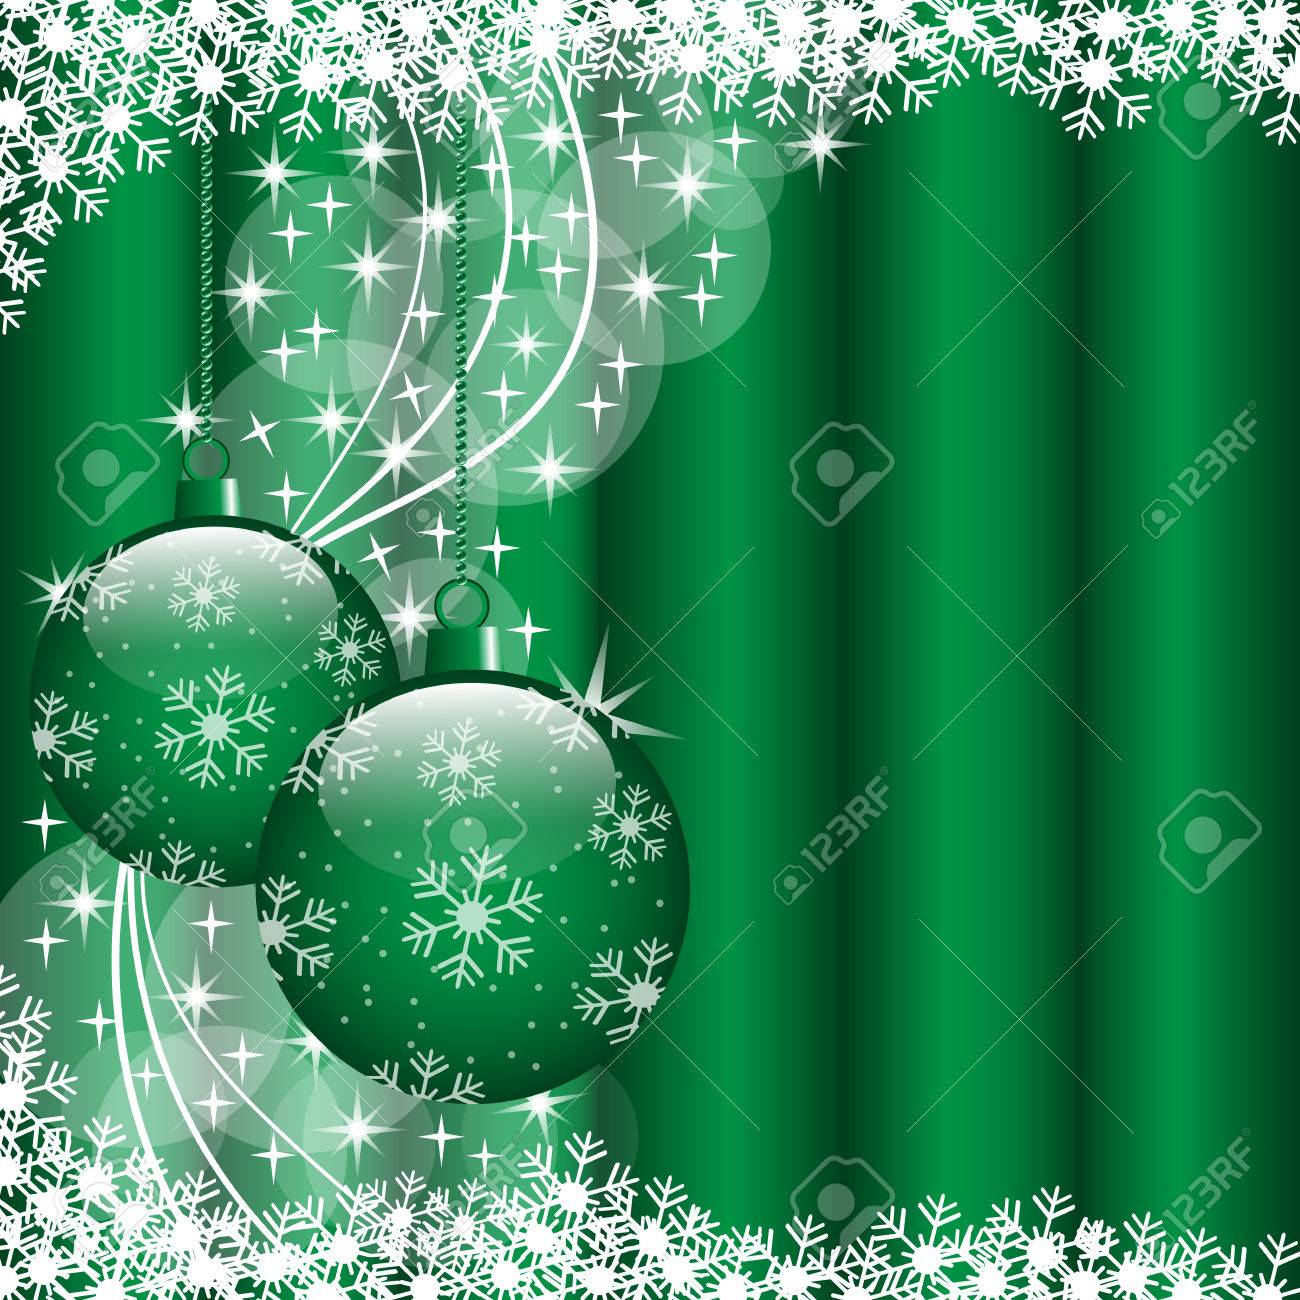 Christmas scene with hanging ornamental green xmas balls, snowflakes and stars. Copy space for text. Stock Vector - 7962109